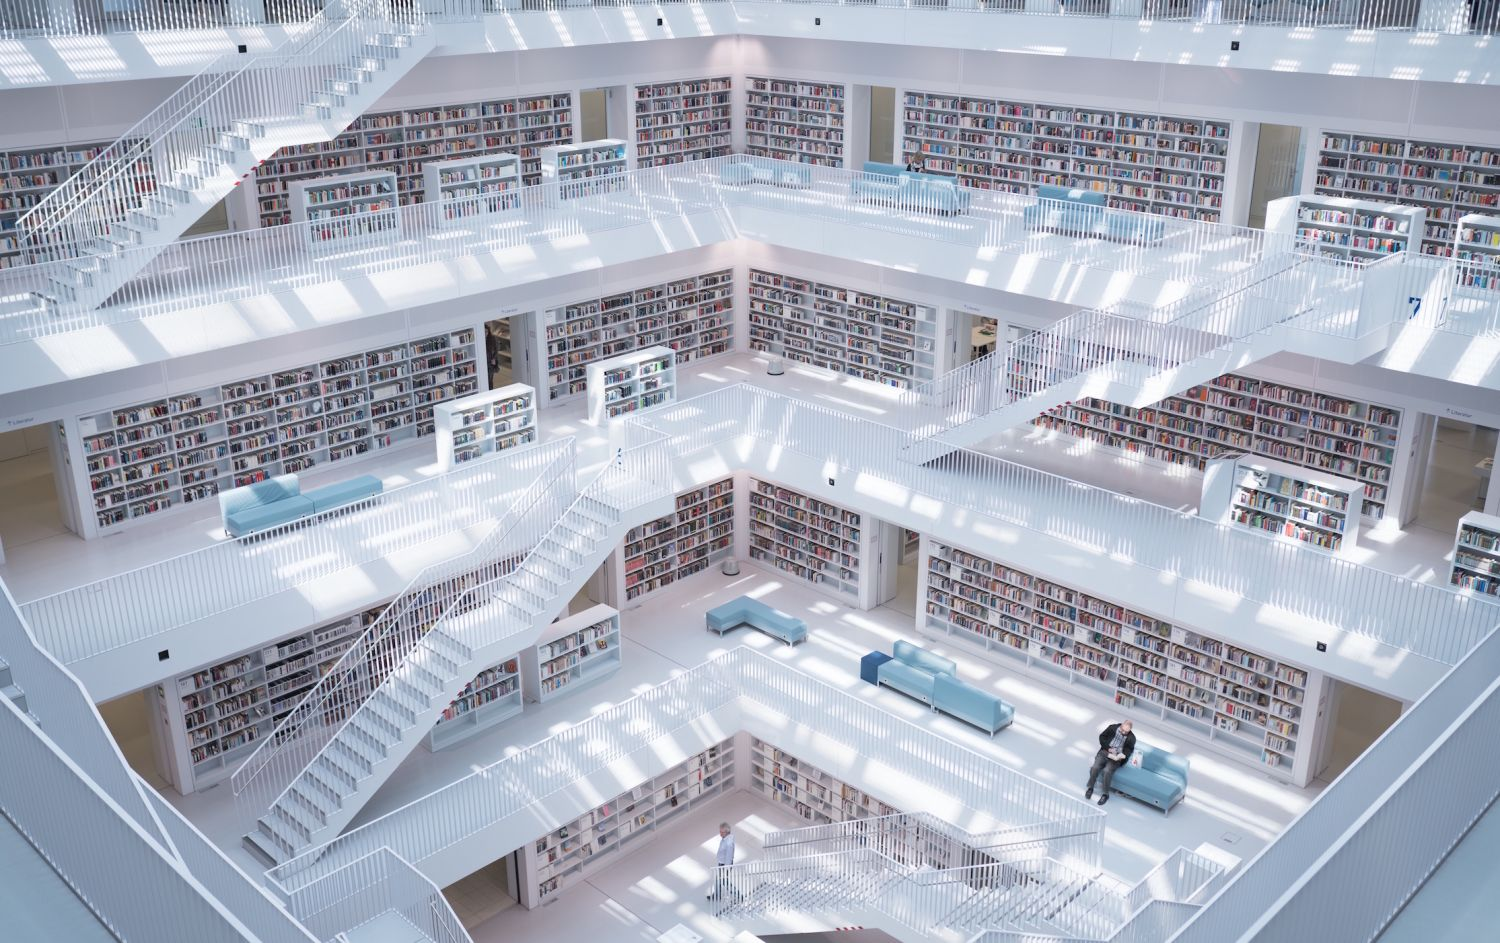 Max Langelott photo of Stuttgart library